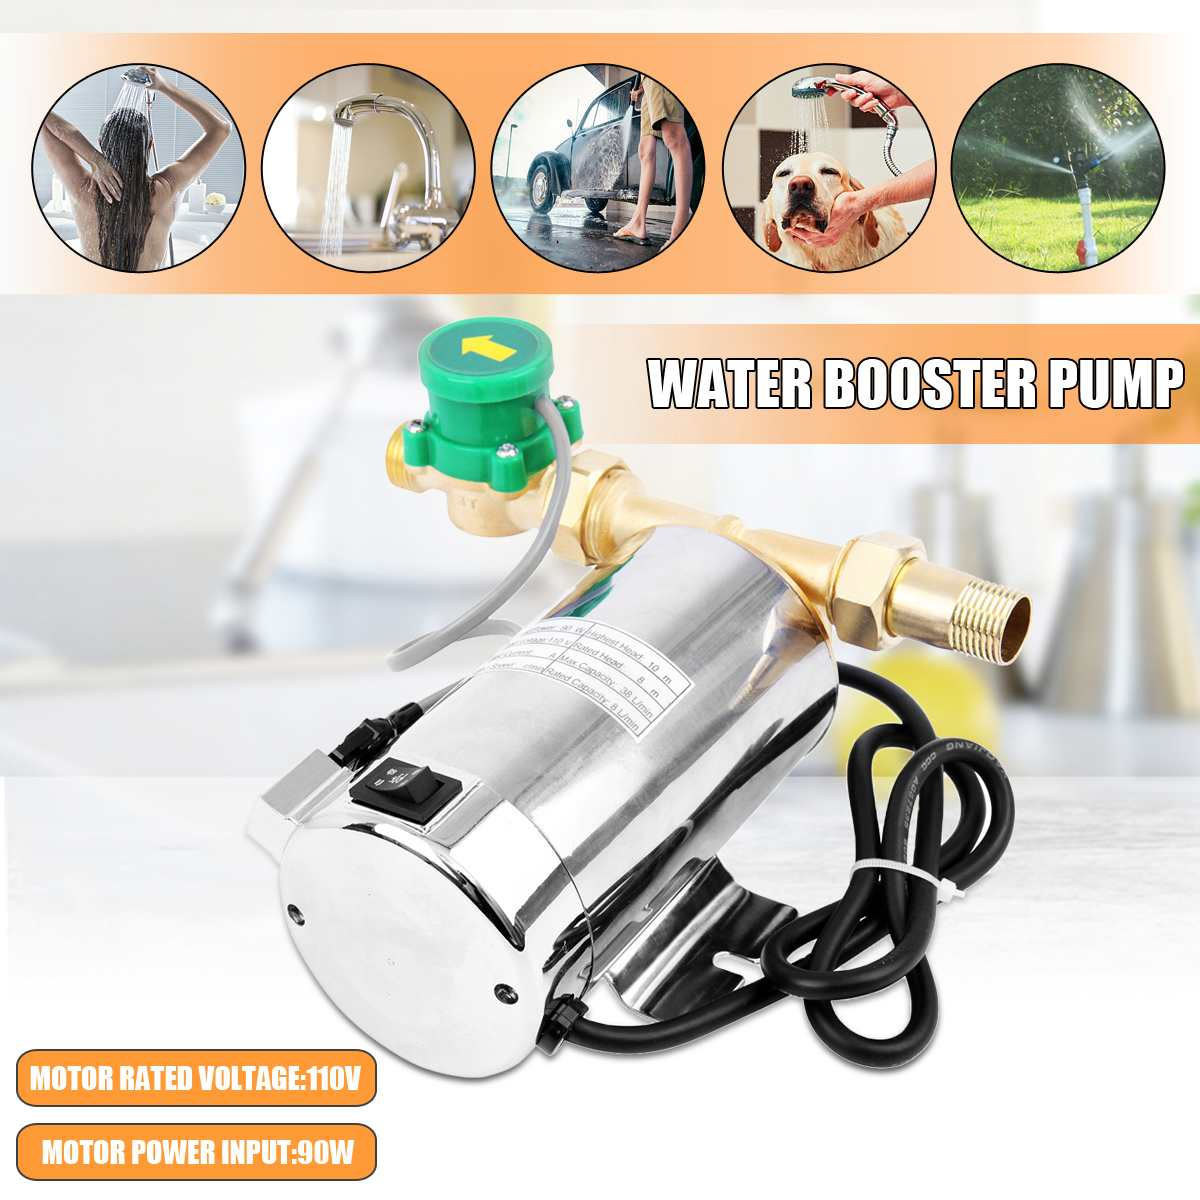 1Pcs Stainless Steel Automatic Home Shower Washing Machine Water Booster Pump 90W 110V 60Hz US Plug1Pcs Stainless Steel Automatic Home Shower Washing Machine Water Booster Pump 90W 110V 60Hz US Plug